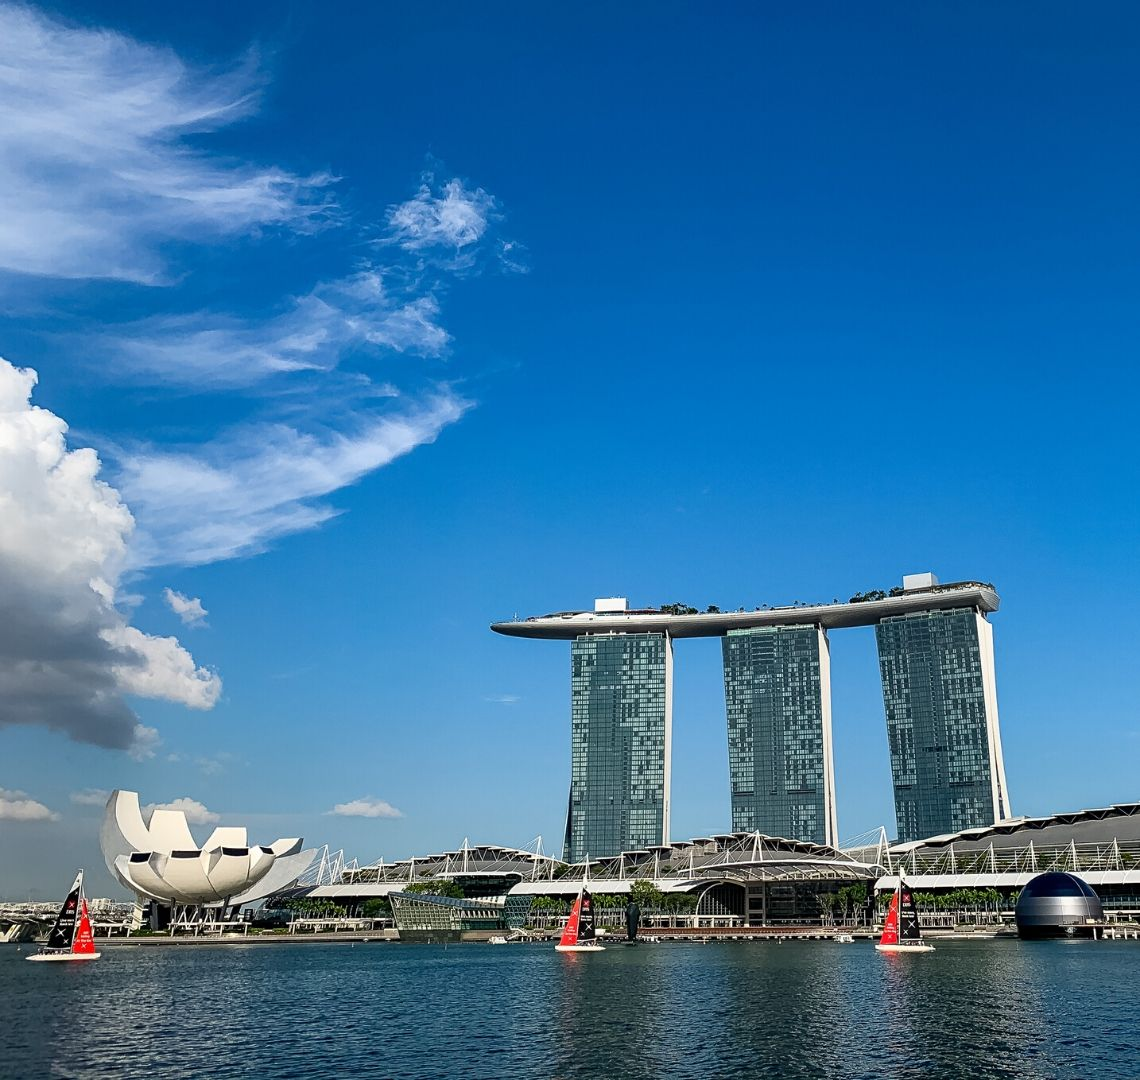 Things To Do In Singapore With Kids - view of Marina Bay Sands hotel from next to teh Merlion, there are sailing boats with red sails in the water between us and the hotel. The sky is bright blue and there are a few clouds to the left.